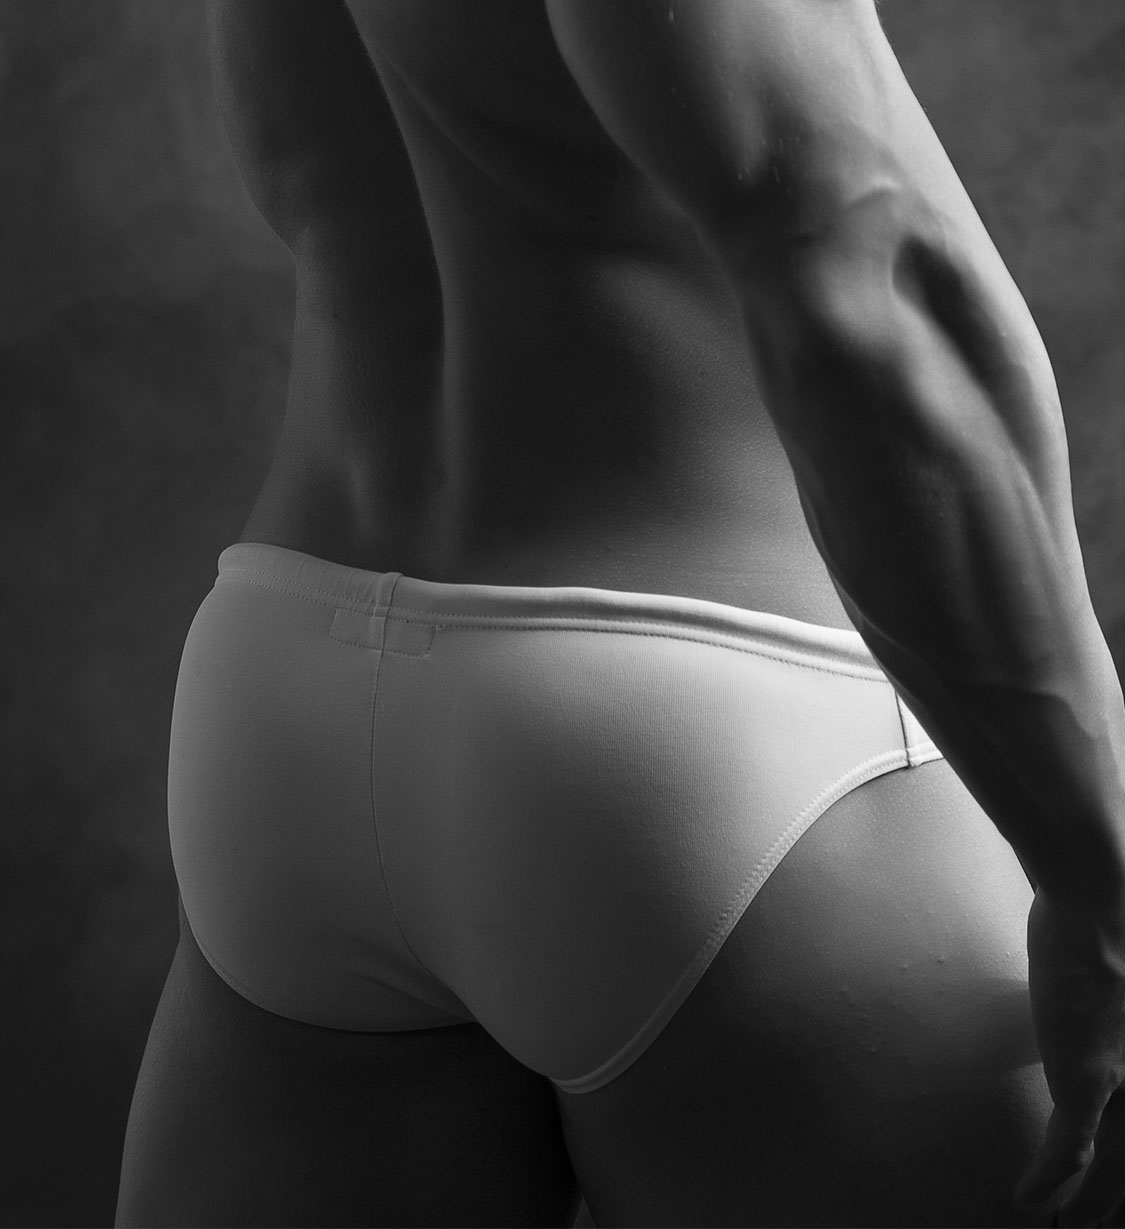 Young mans muscular buttocks in white speedos